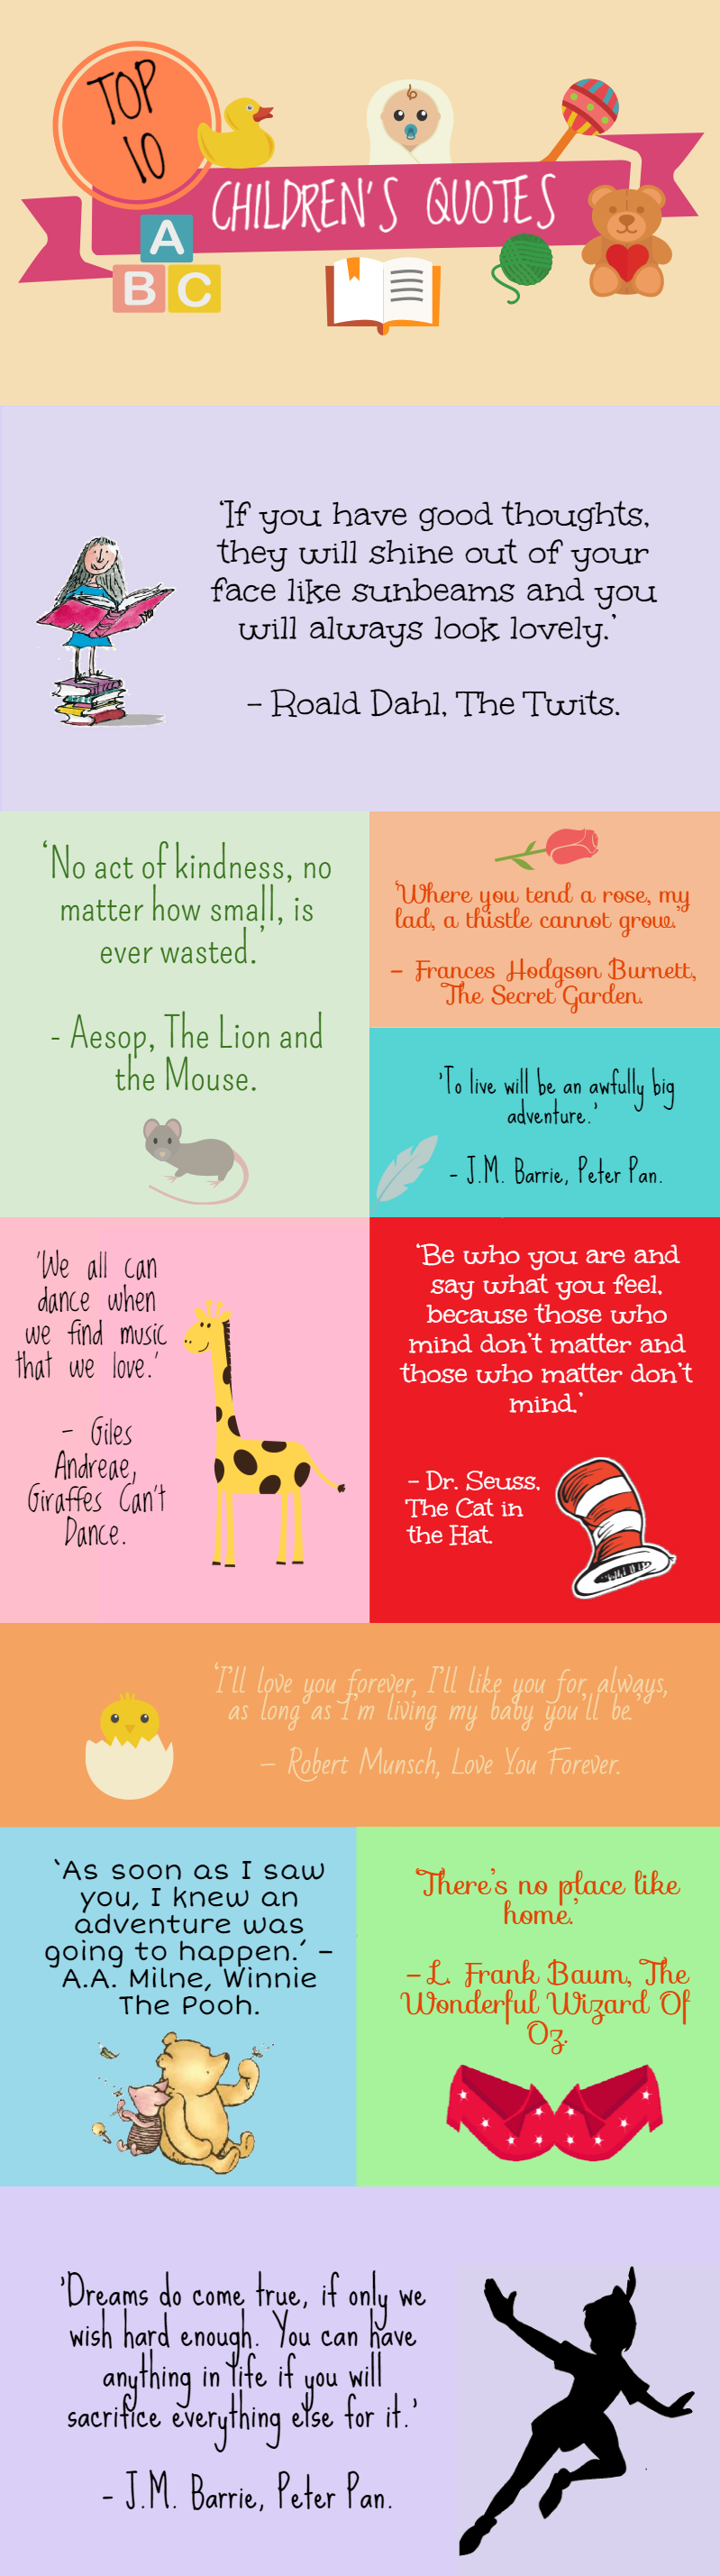 Top 10 Children's Quotes Infographic